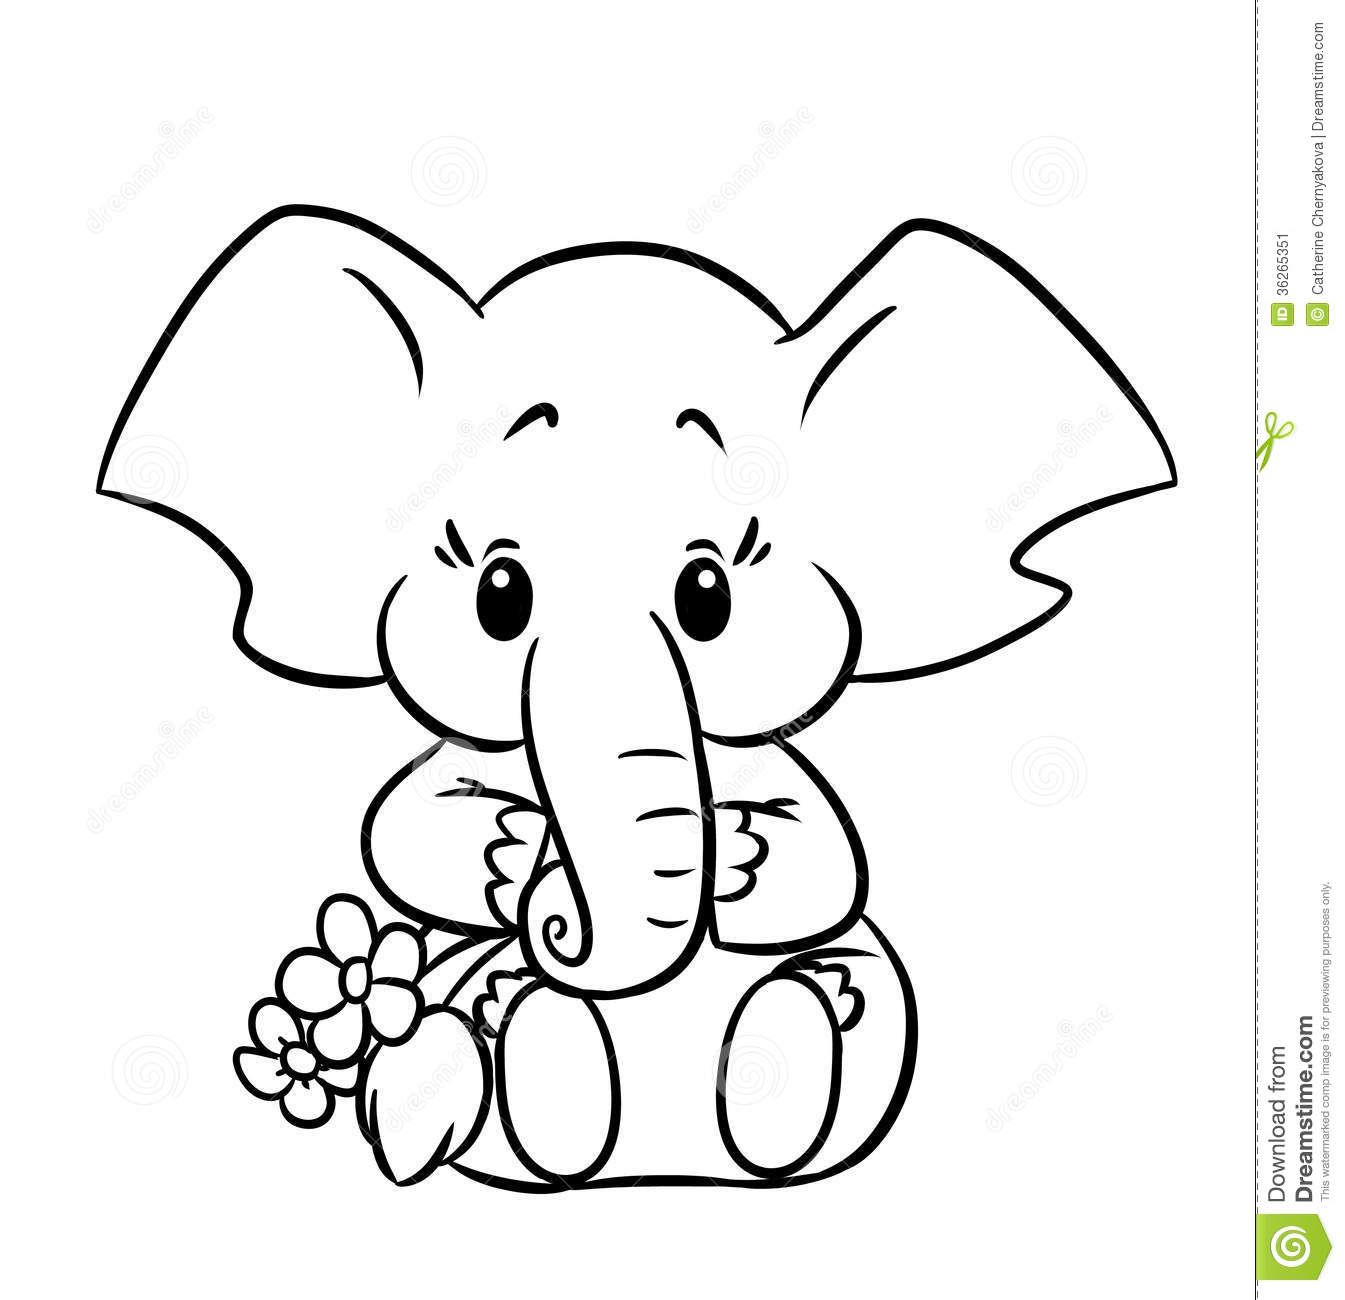 Little Elephant Baby Elephant Drawing Elephant Coloring Page Elephant Drawing